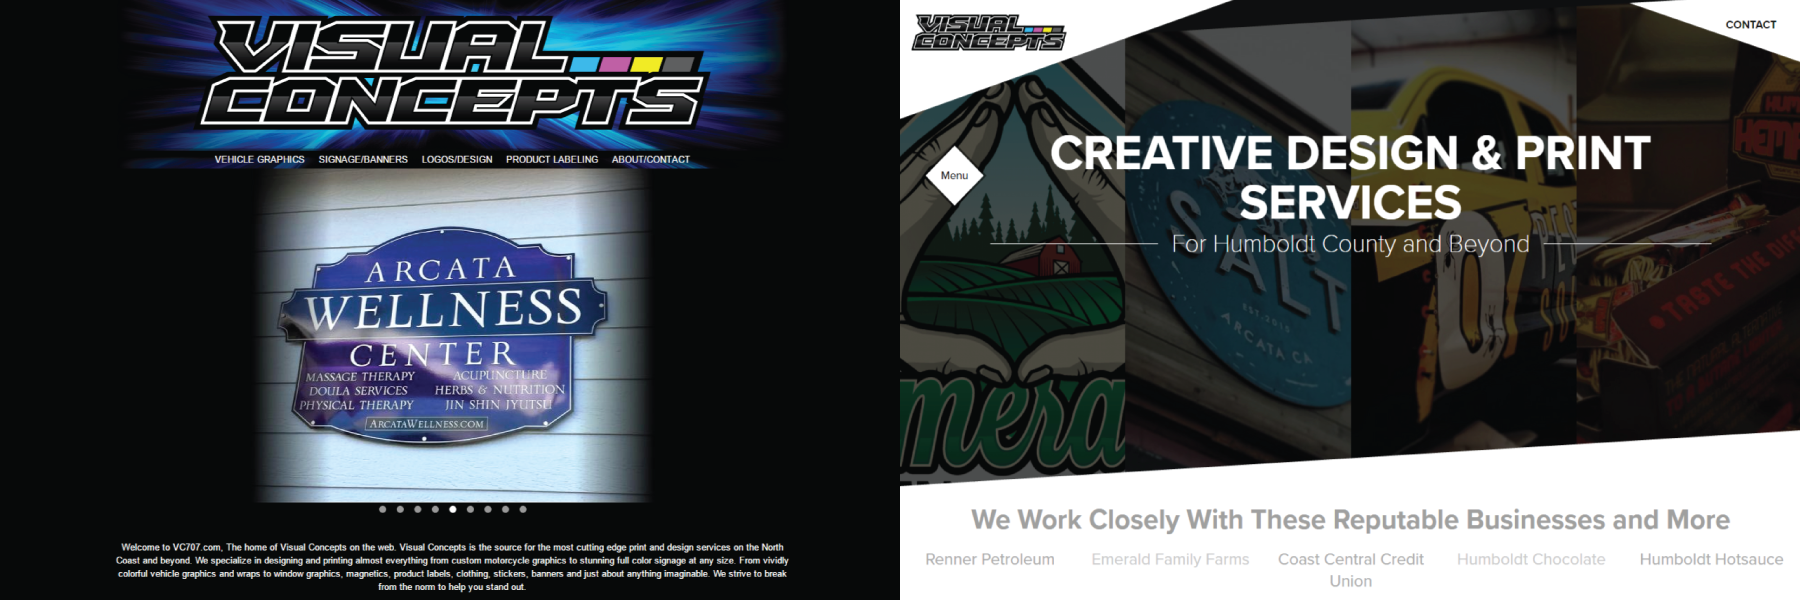 Before and After Screenshots of Visual Concepts Website